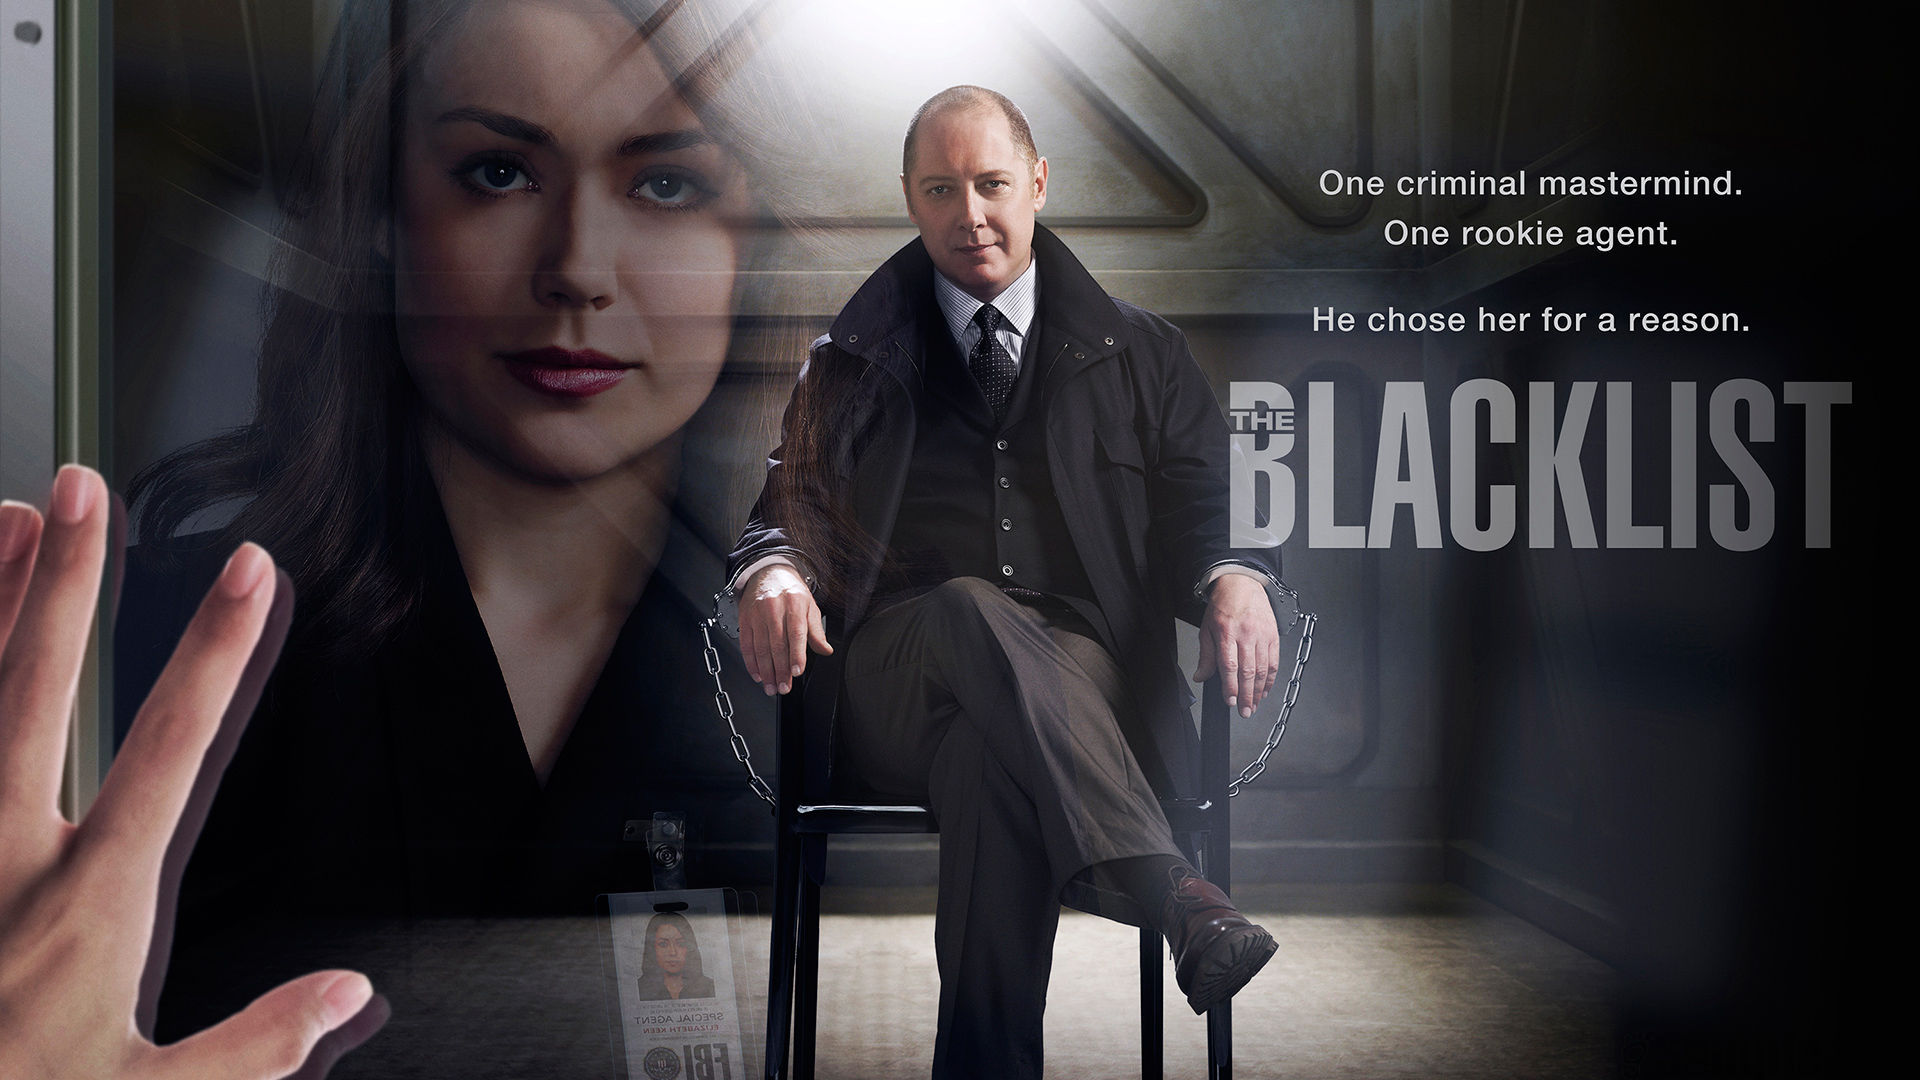 HD pics of The Blacklist TV series